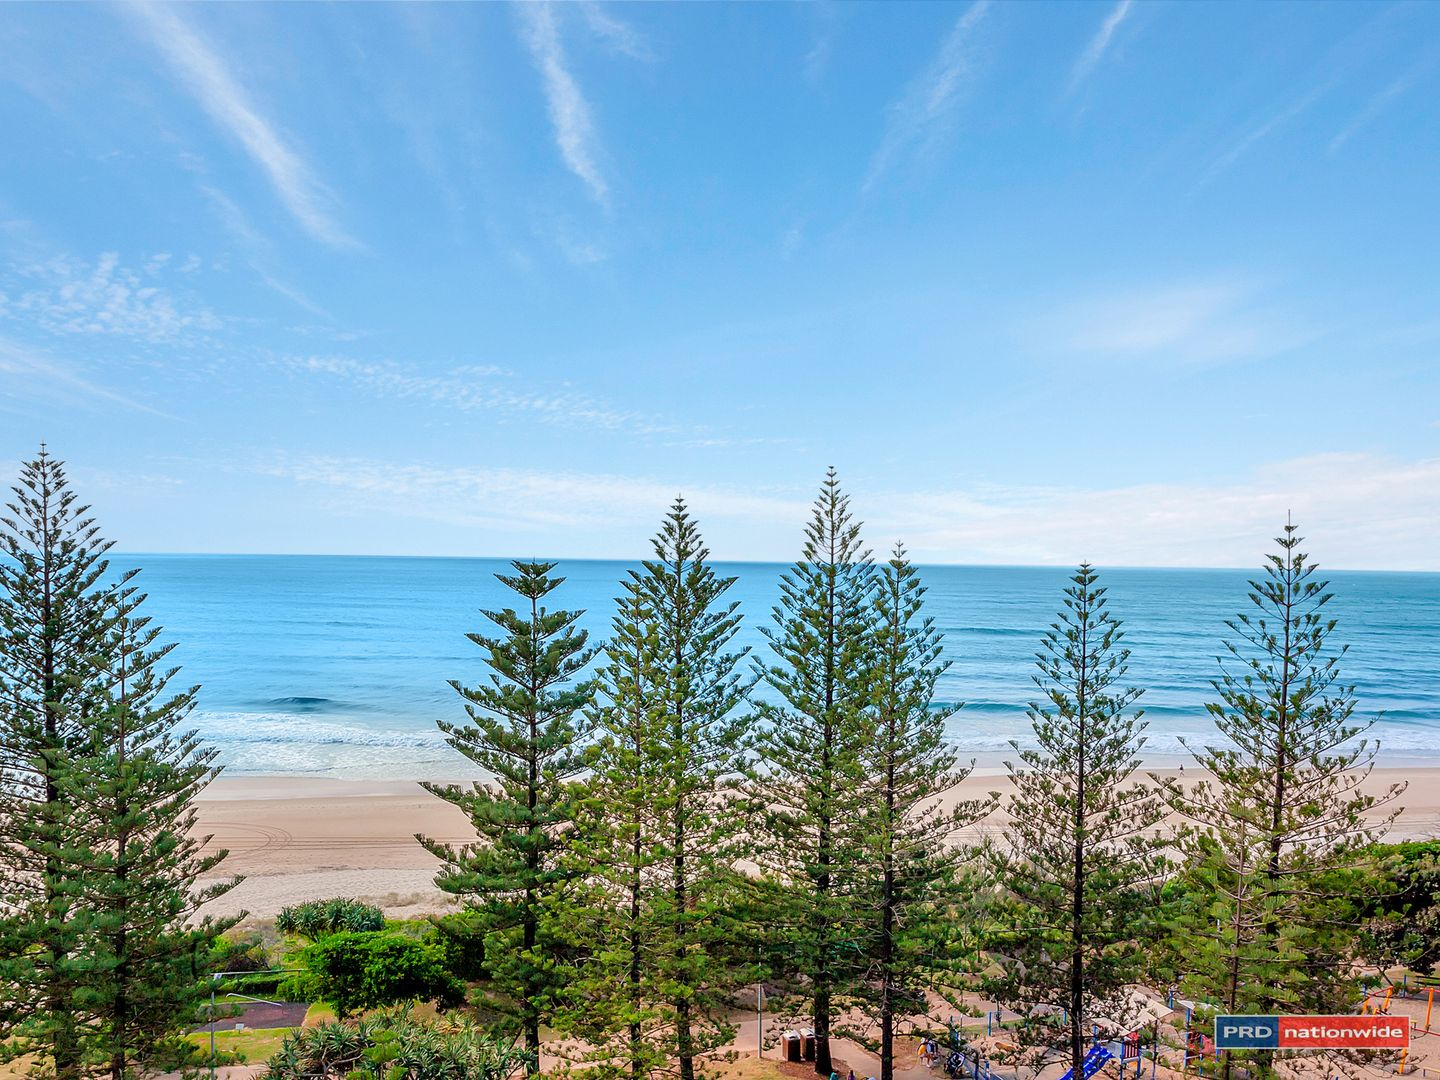 39/202 The Esplanade, Burleigh Heads QLD 4220, Image 1